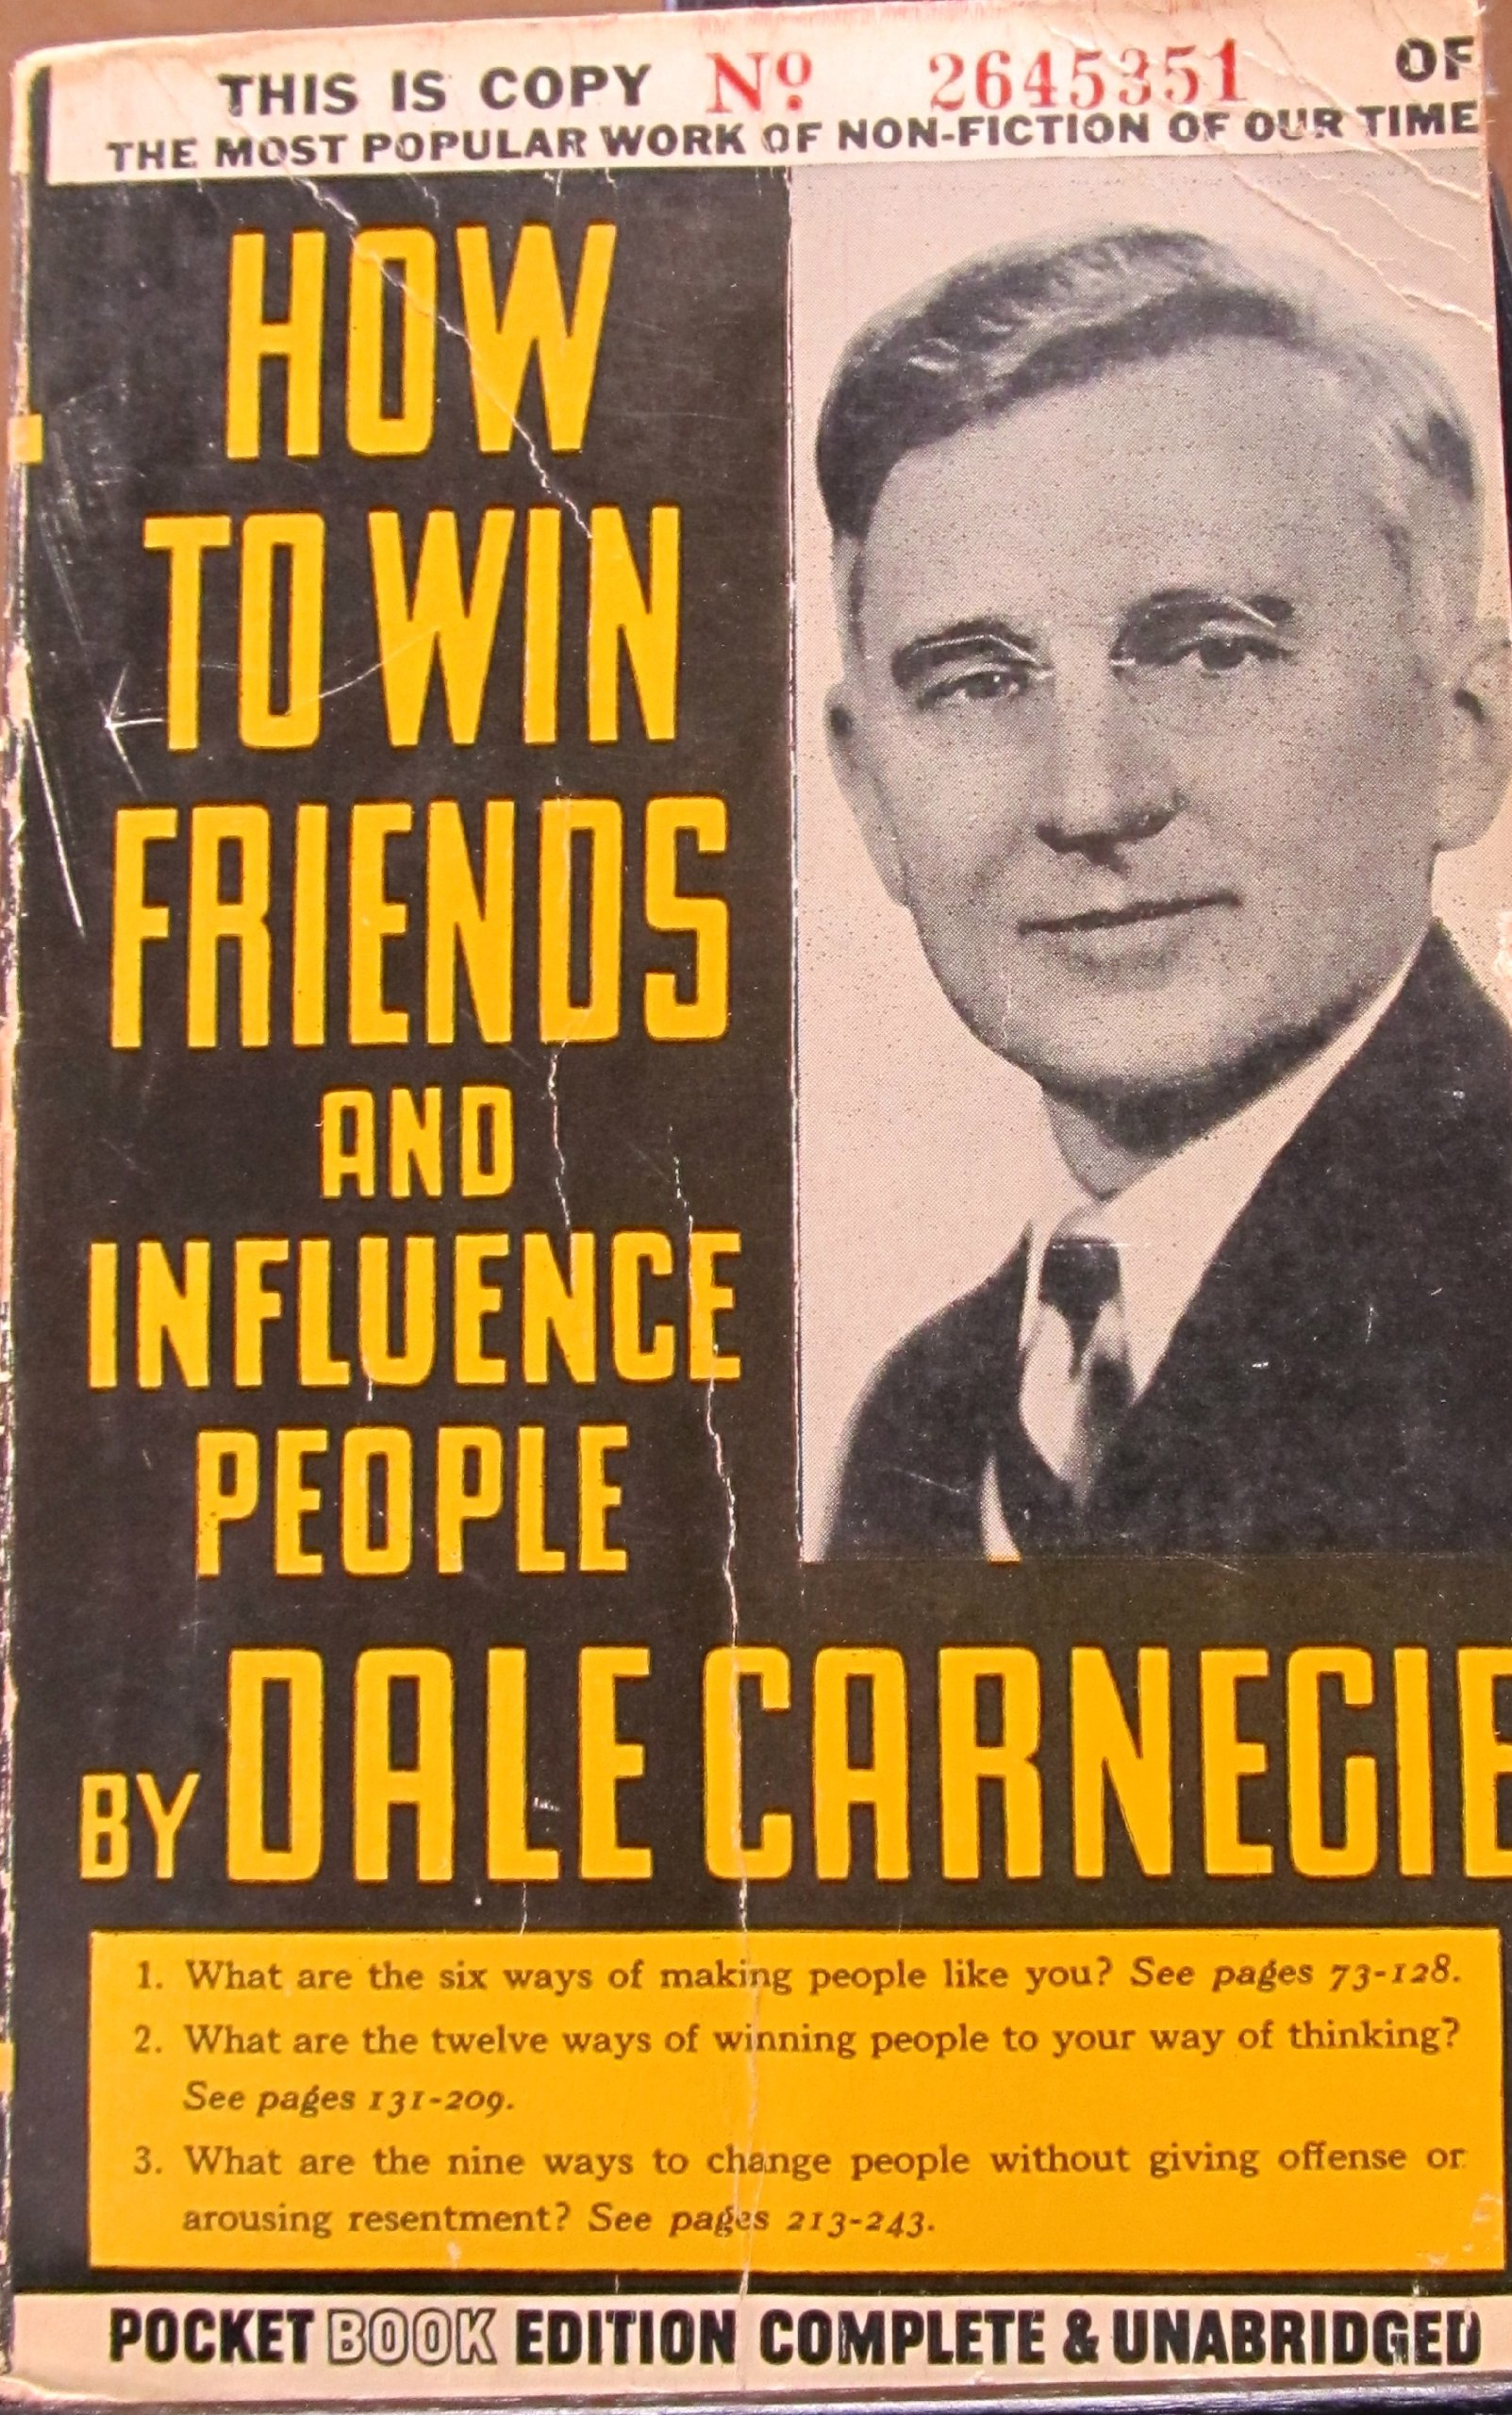 how to win friends and influence people Mass Market Paperback – 1943